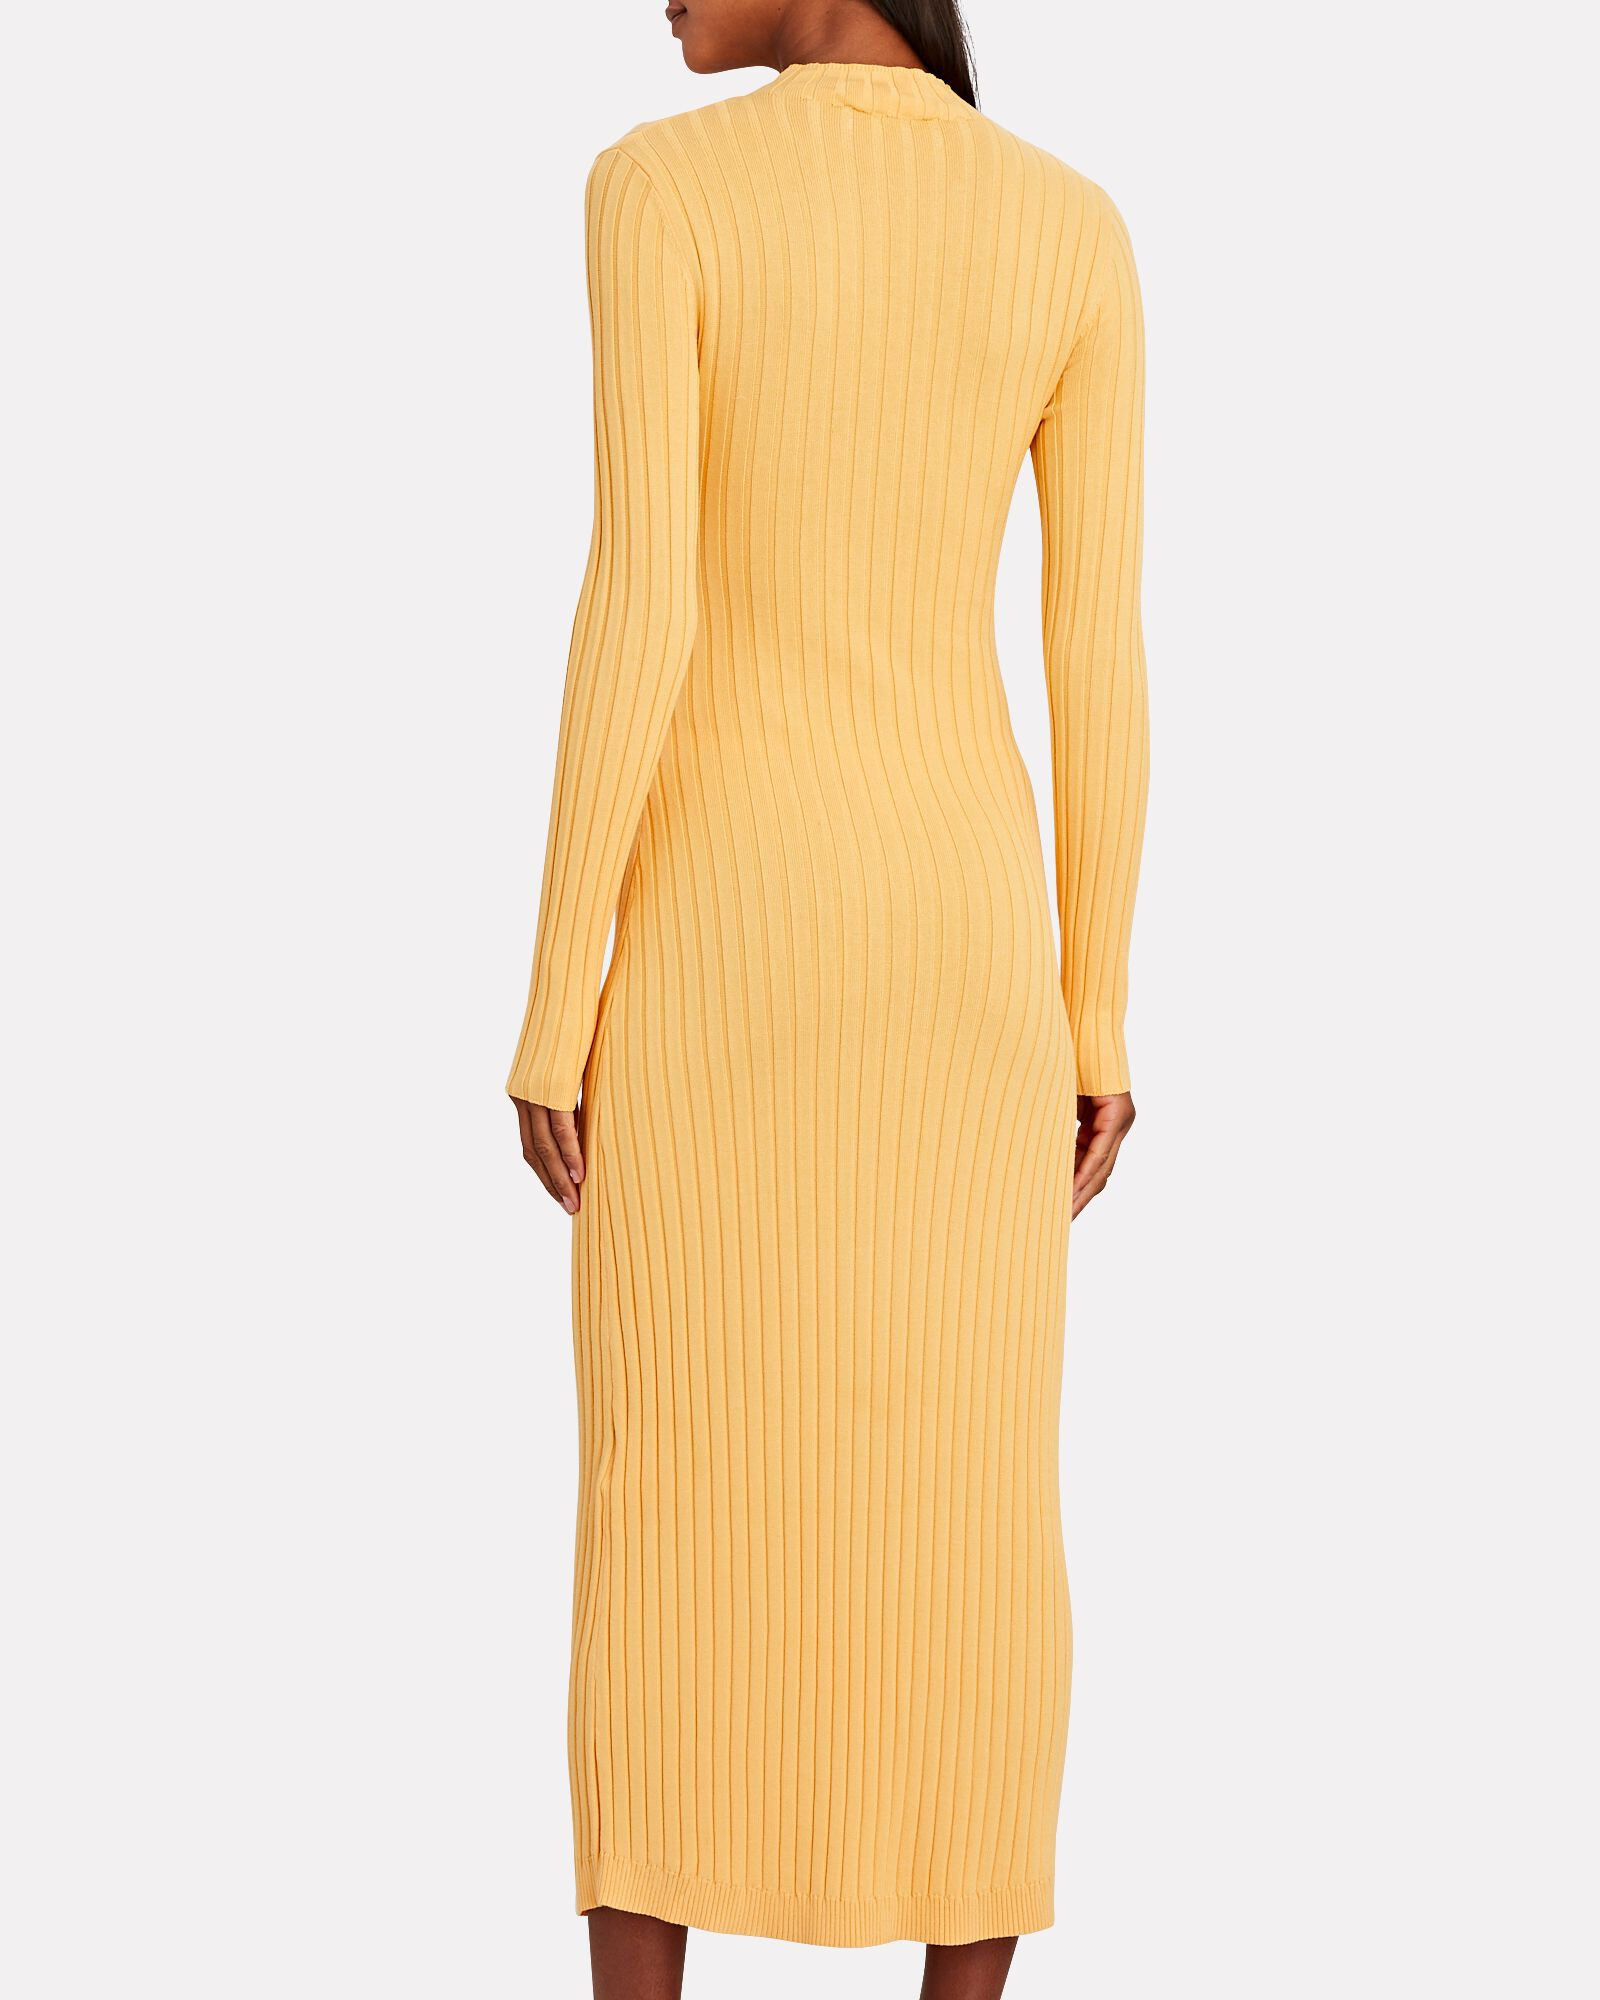 Ariana Tie-Front Sweater Dress, YELLOW, hi-res